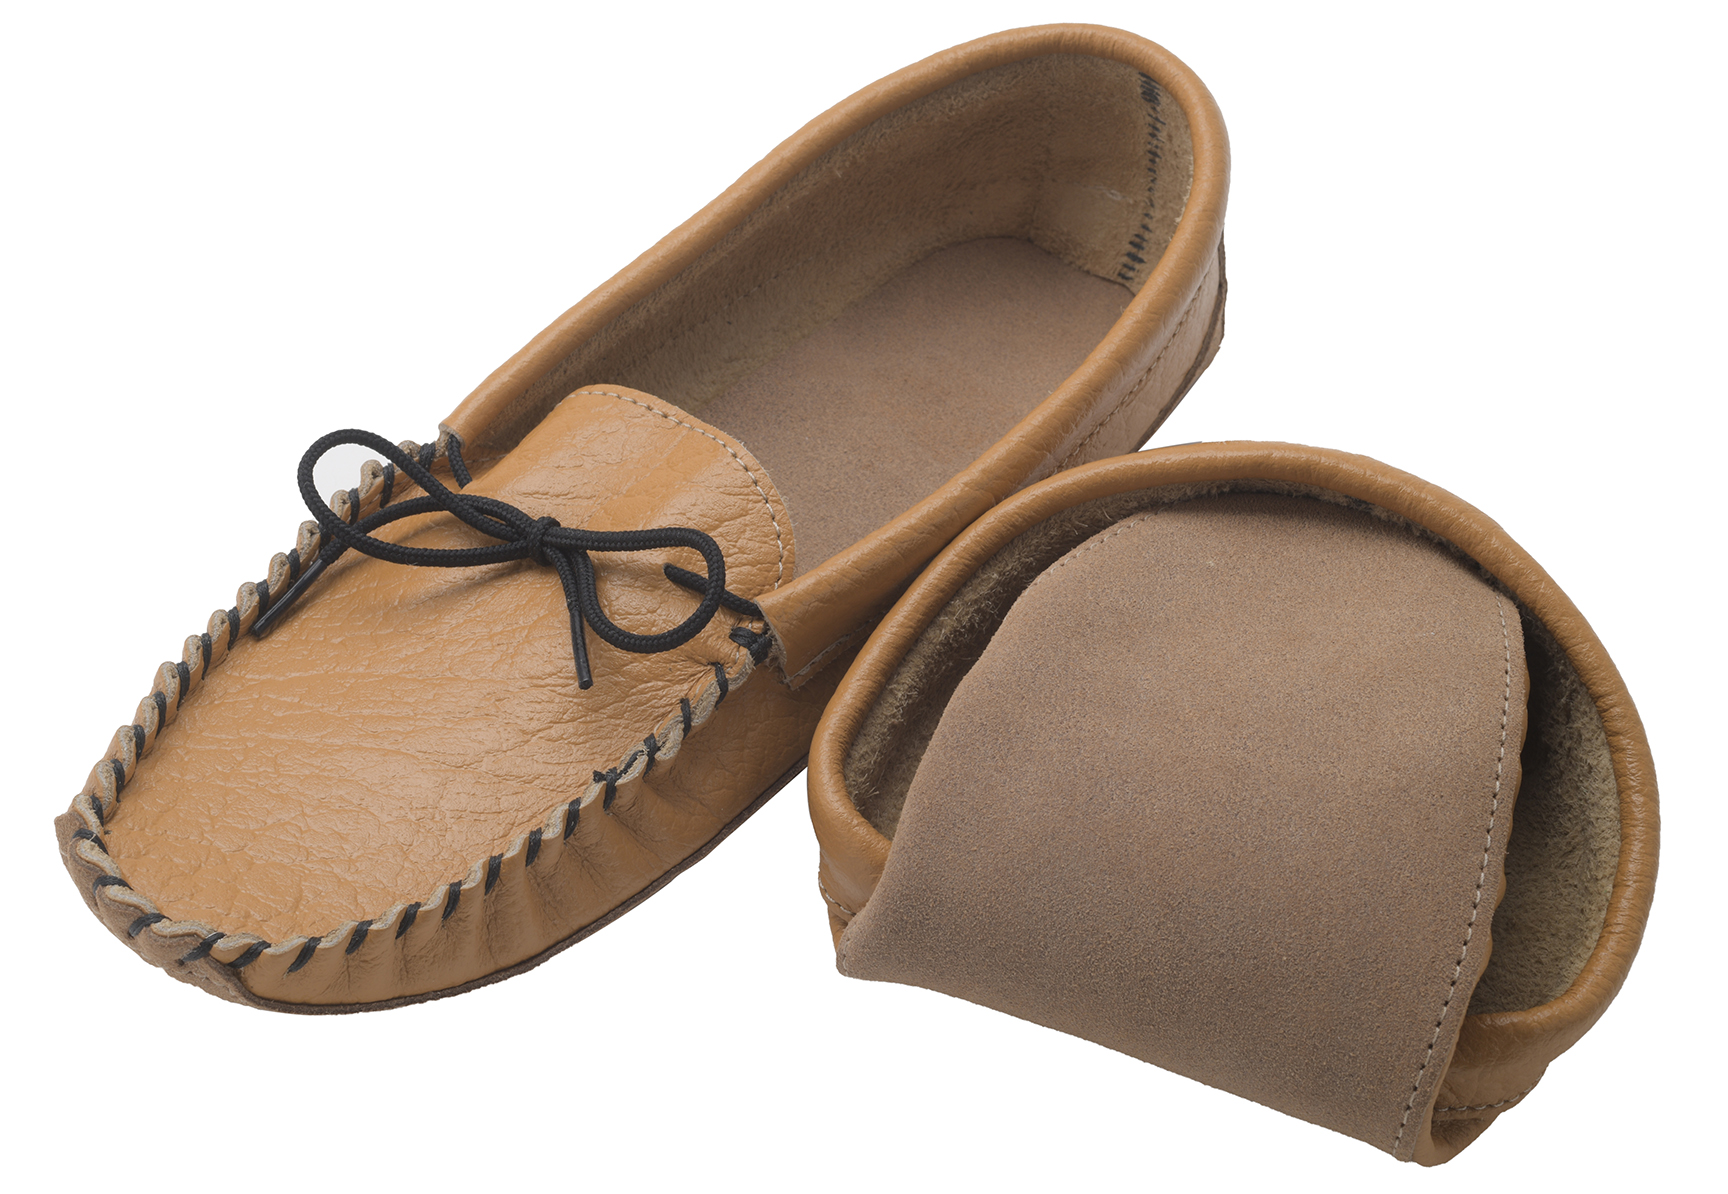 Leather-Earthing-Grounding-Moccasin-Slippers-Made-in-the-UK-Mens-amp-Ladies thumbnail 9